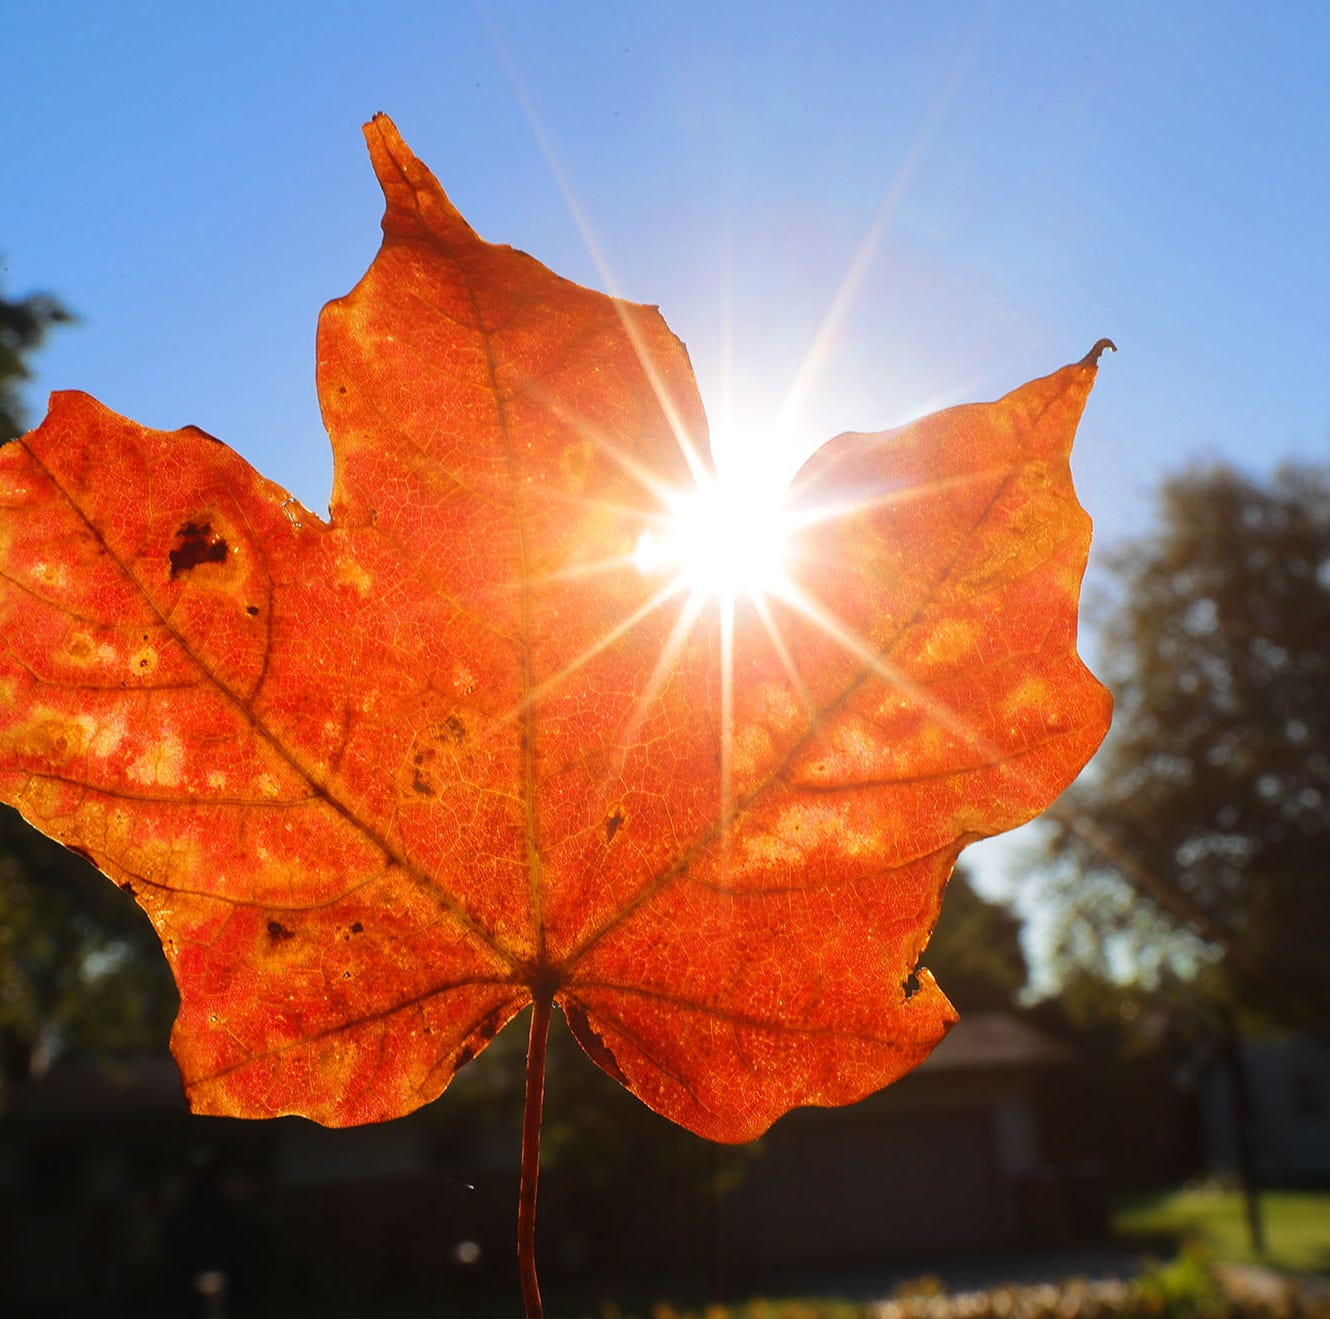 A fall colored leaf on Wednesday, September 12, 2018.  - leaves autumn trees -  Photo by Mike De Sisti / Milwaukee Journal Sentinel